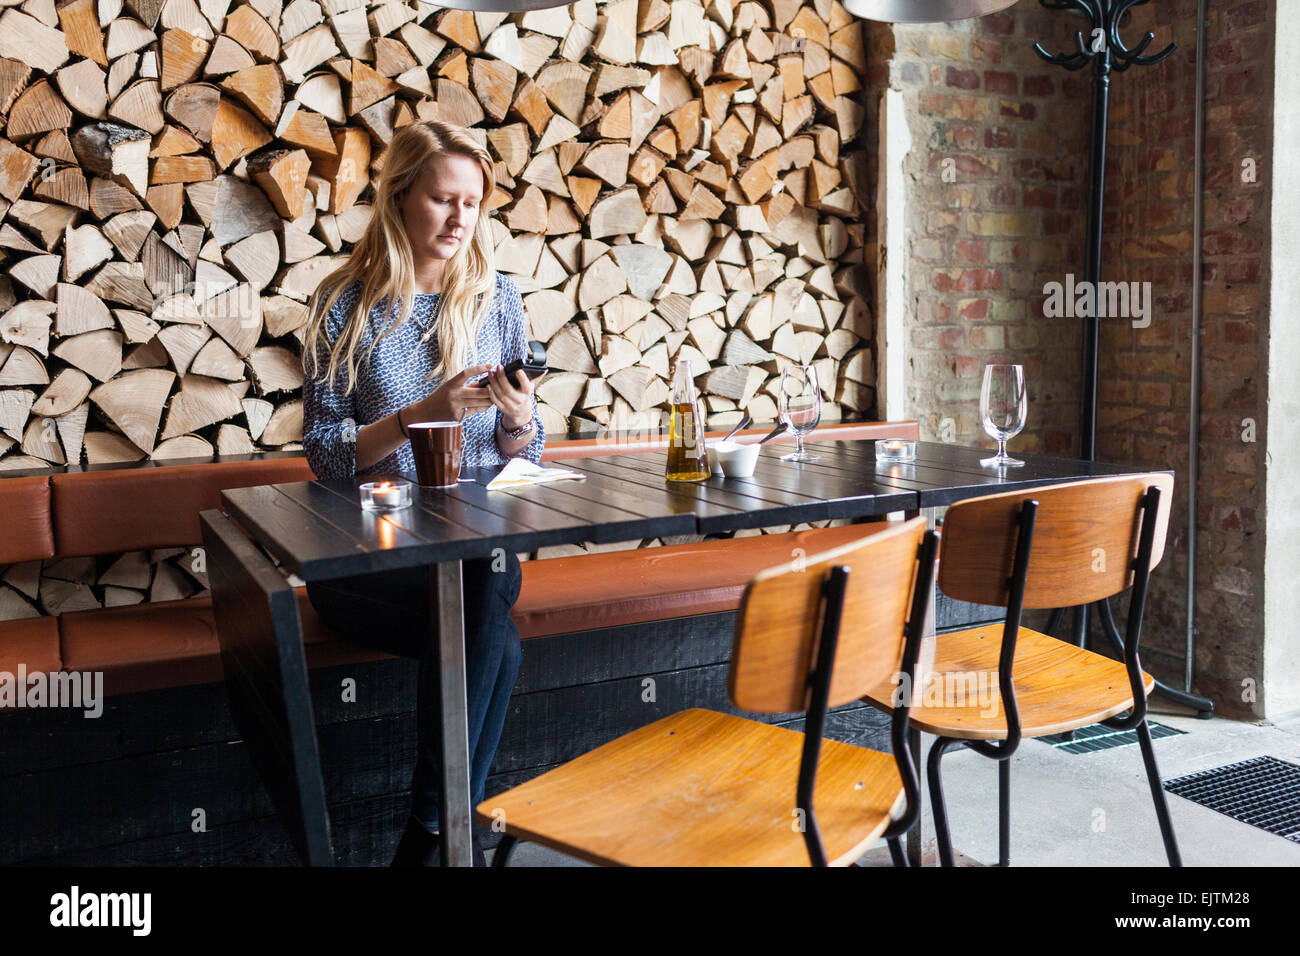 Young woman using mobile phone in restaurant - Stock Image